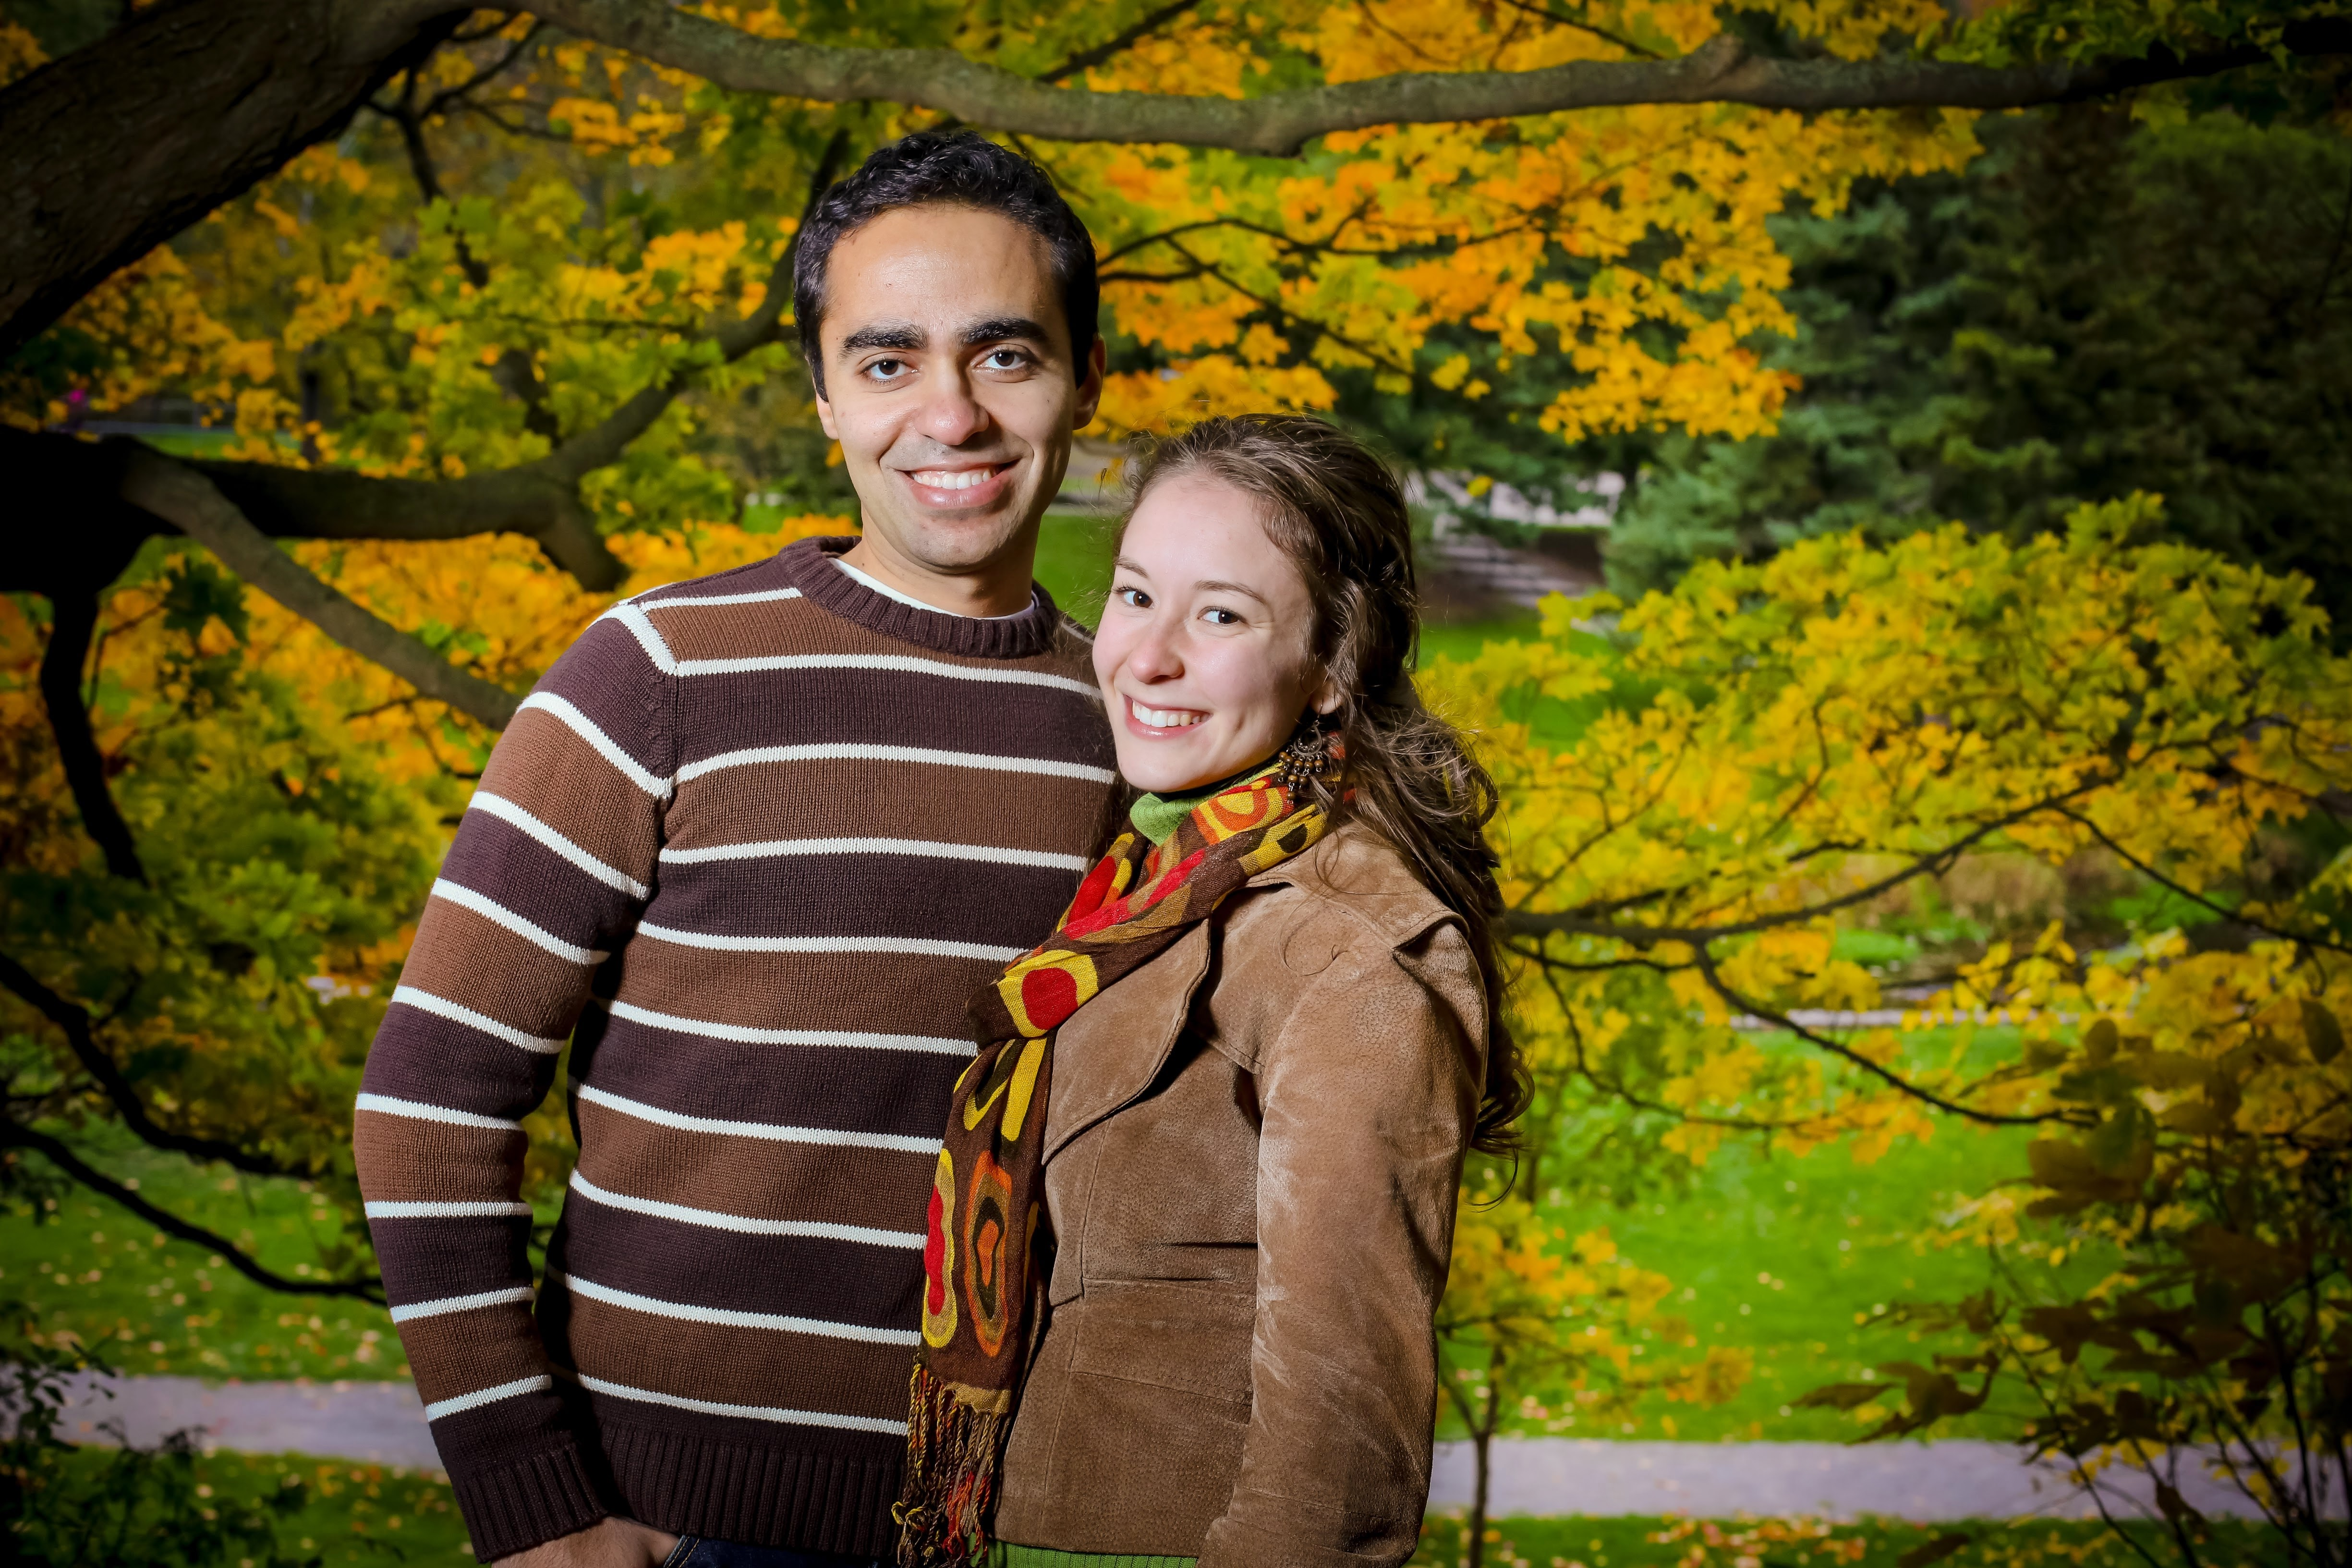 Our Story - Sameh and Geraldine in a park